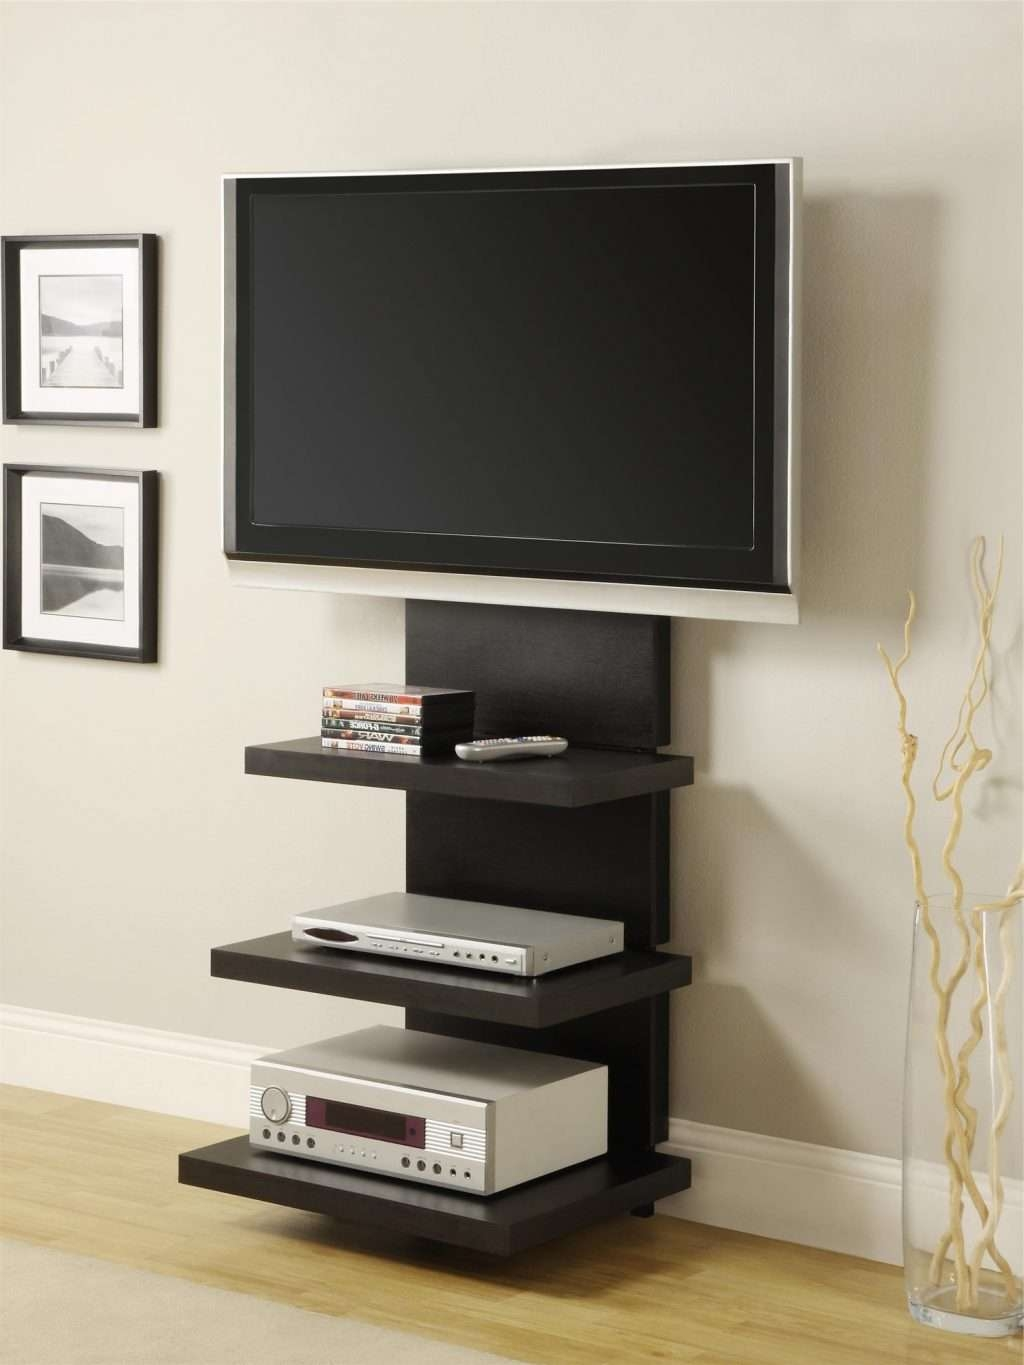 Living ~ Furniture Brown Yellows Wooden Tv Stands With Mounts And Inside Yellow Tv Stands (View 13 of 15)